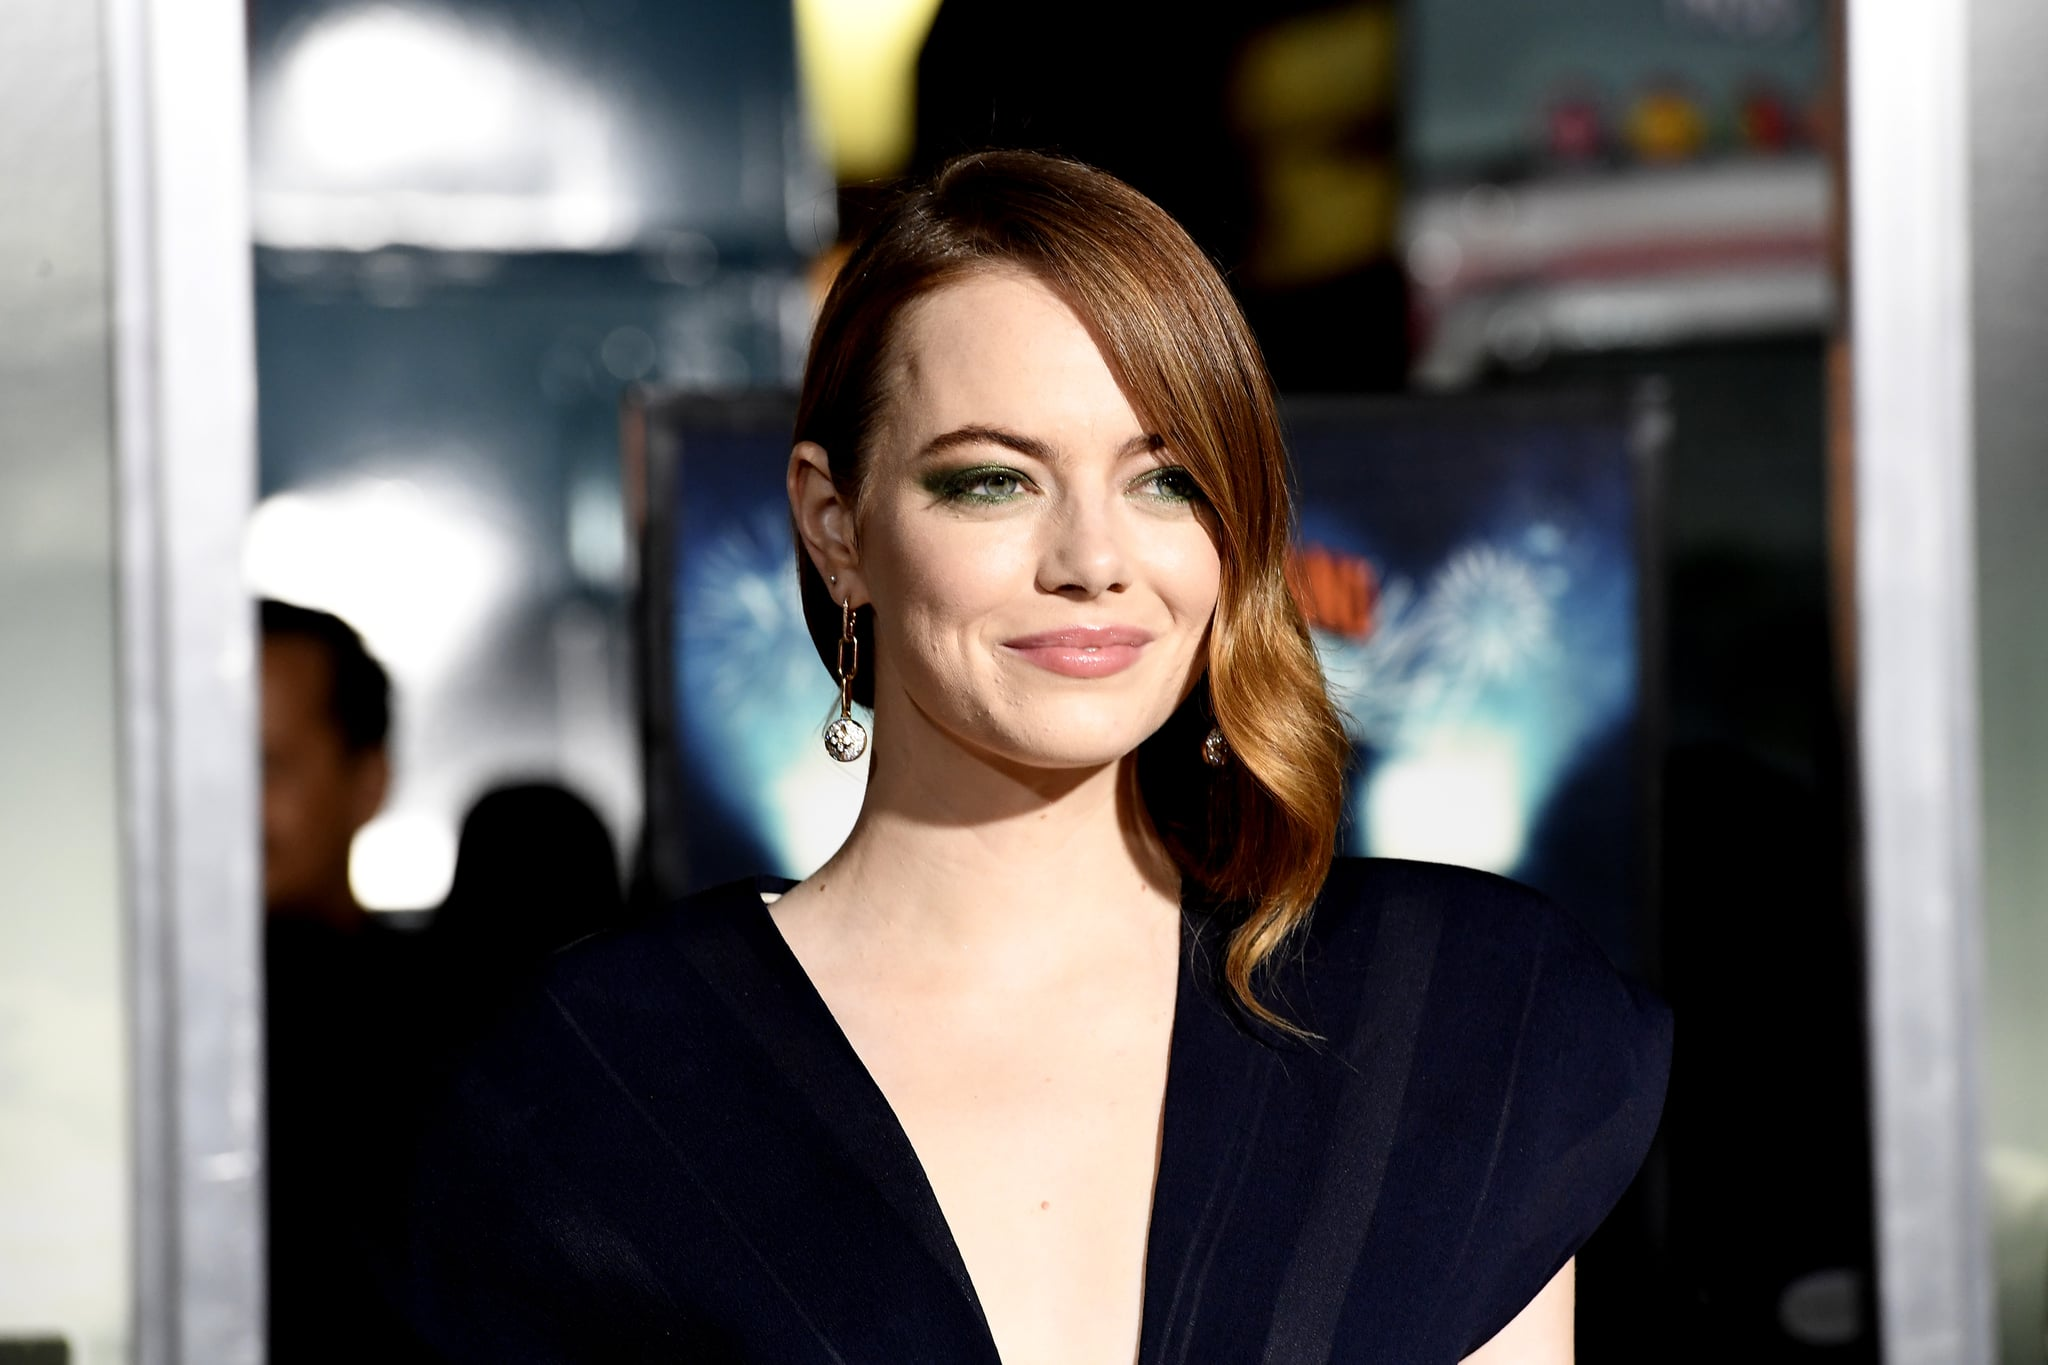 WESTWOOD, CALIFORNIA - OCTOBER 10: Emma Stone attends the Premiere Of Sony Pictures'